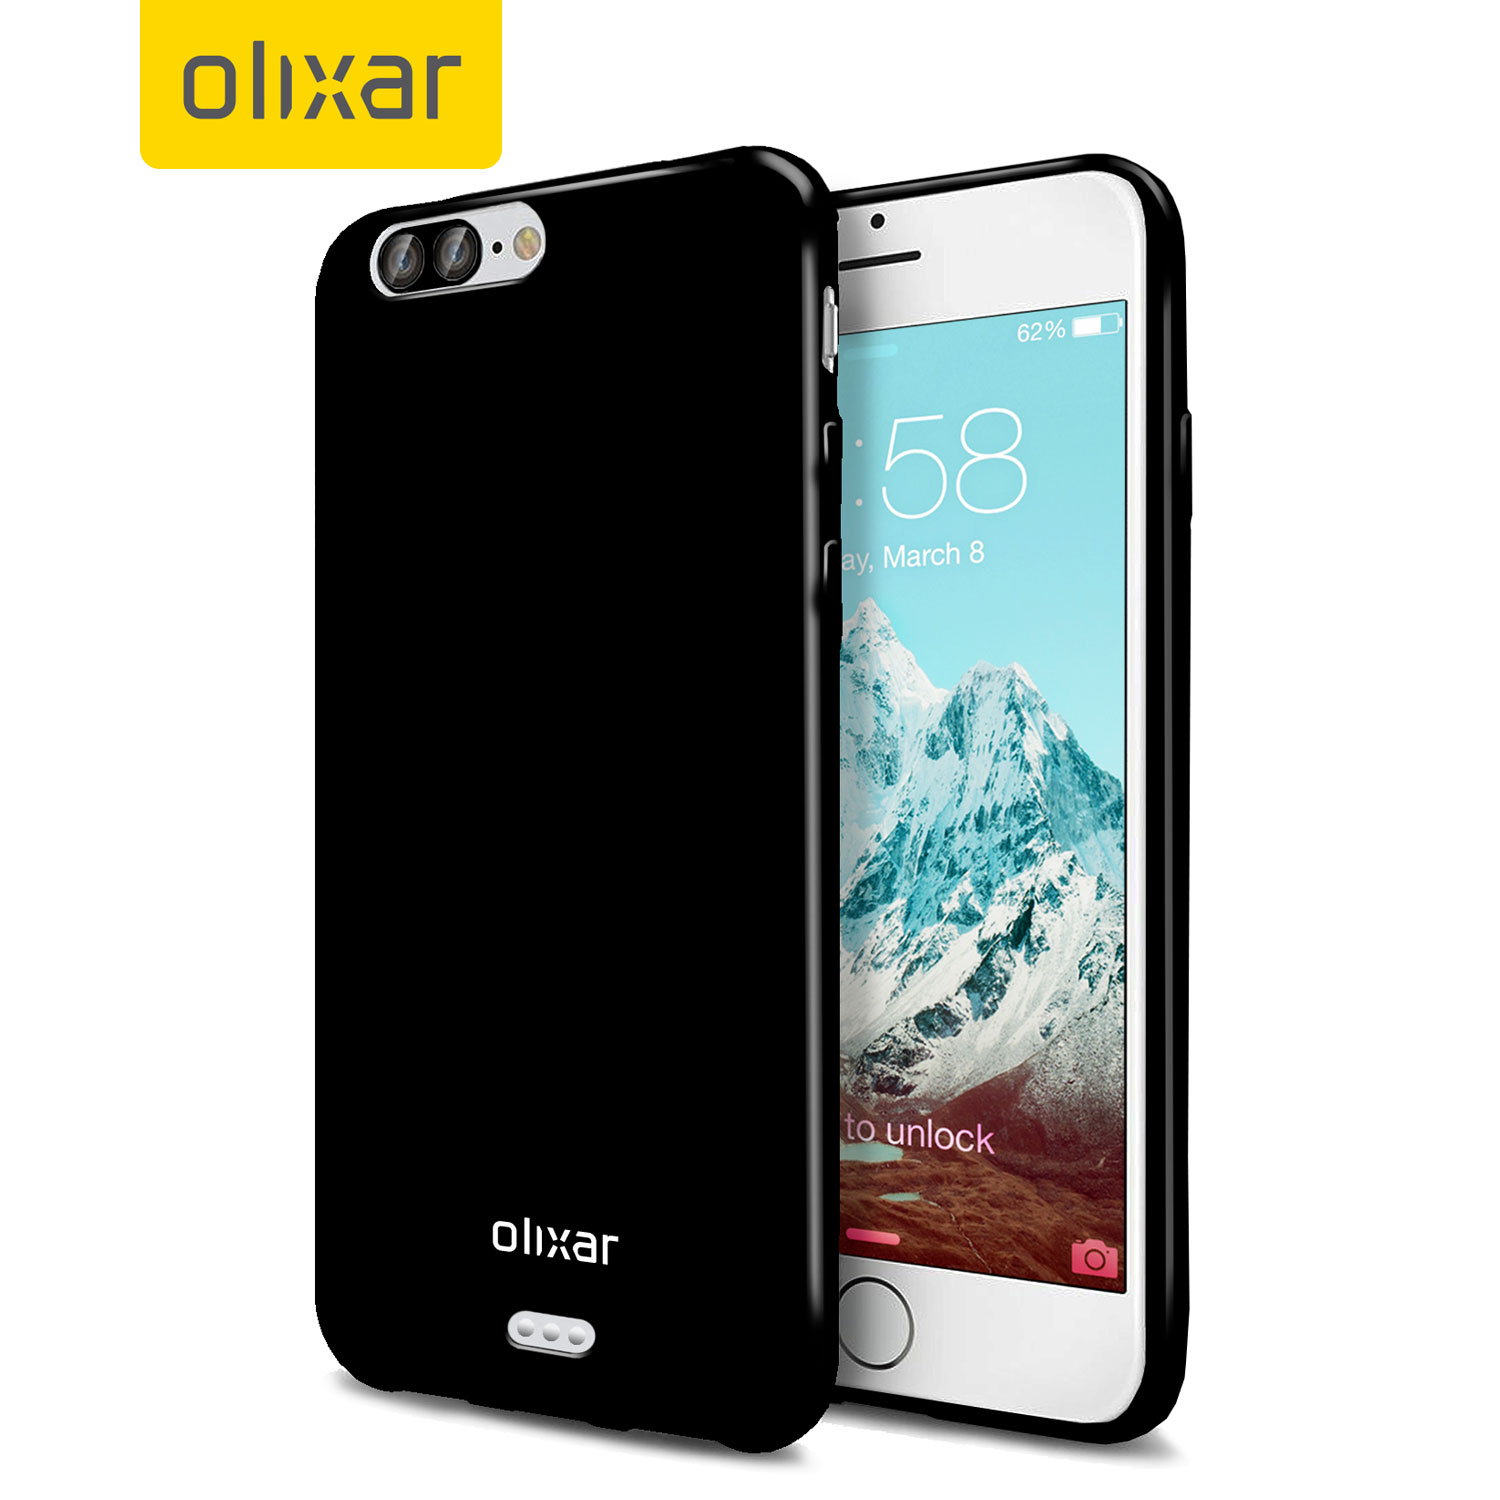 iPhone-7-and-7-Plus-case-images-by-Olixar (6)